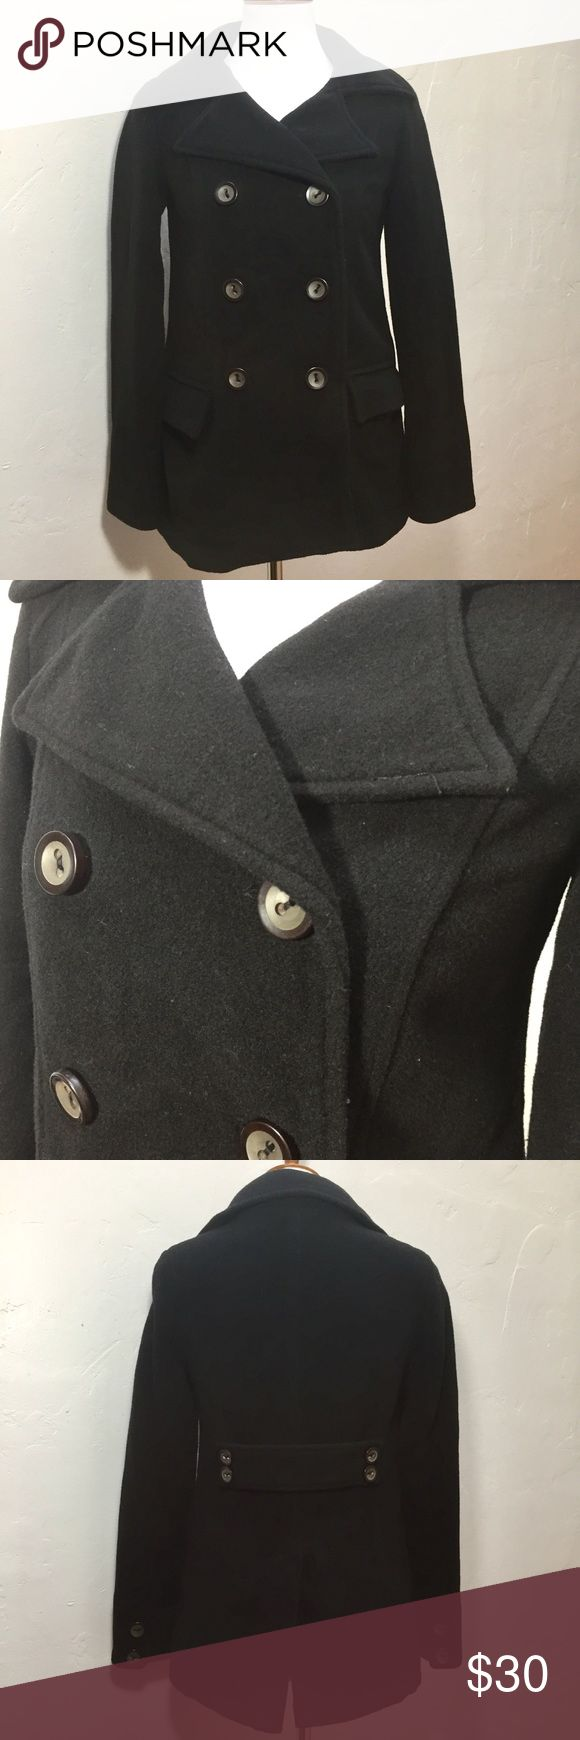 "Old Navy Black Wool Blend Double Breasted Pea Coat Old Navy Black Wool Blend Double Breasted Pea Coat  This coat is in good condition. Double breasted with 2 pockets on the front.  Approximate measurements: Total length - 26 3/4"" Armpit to armpit - 17 1/4"" Sleeve length - 23 1/2""  ⭐️bundle with other items to make the most of shipping⭐️  JB1084 Old Navy Jackets & Coats Pea Coats"